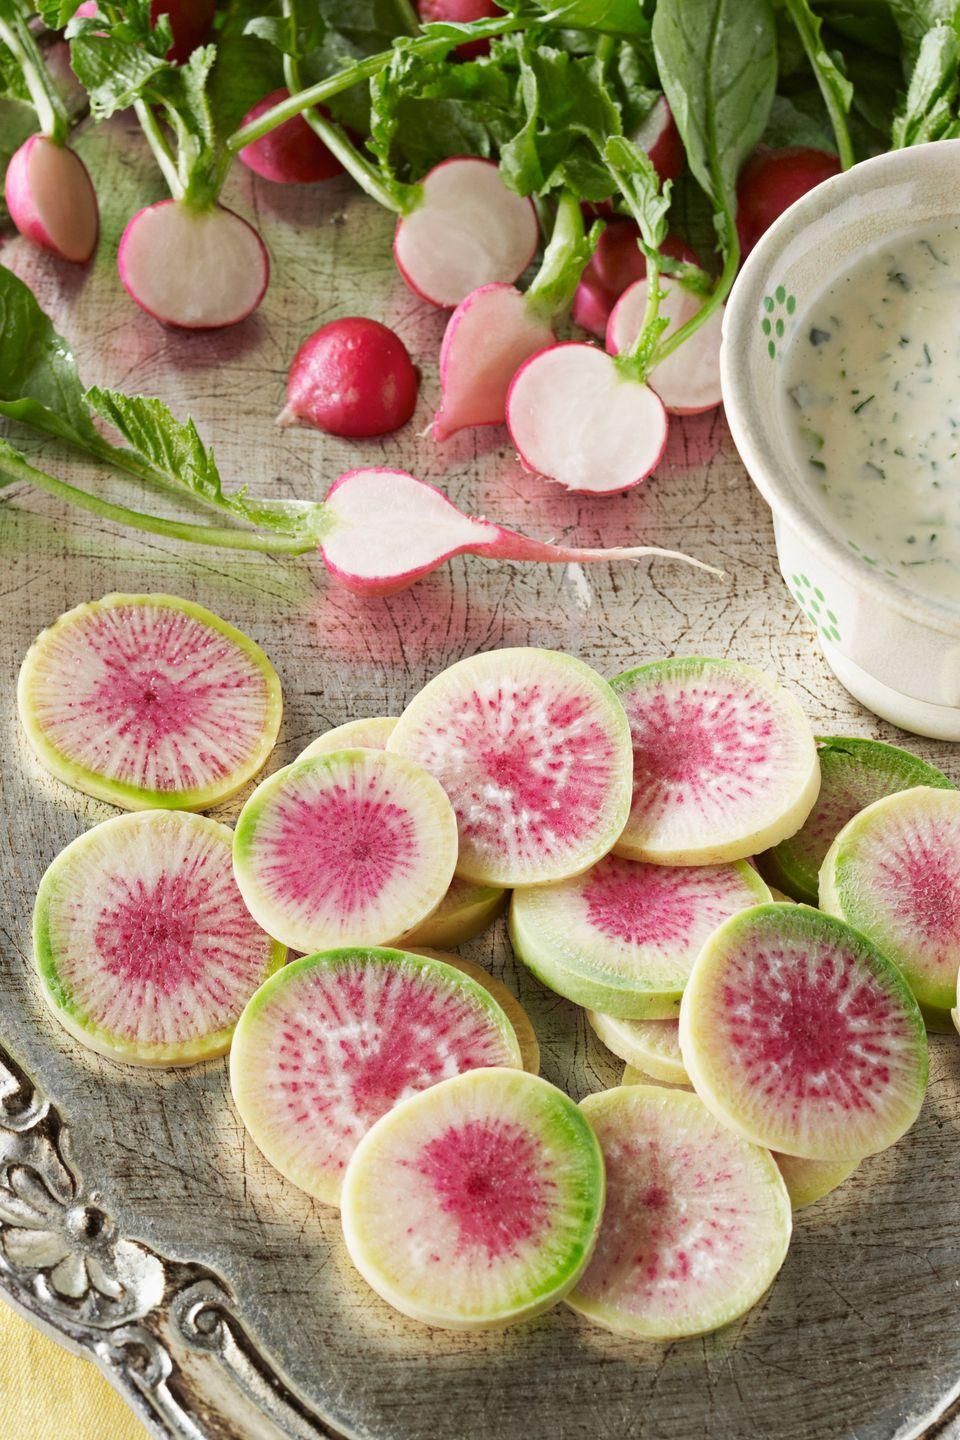 "<p>Radishes dipped in butter is a classic French recipe. This inspired dish takes tradition one step further by replacing the butter with a dip made of zesty horseradish, tangy buttermilk, and fresh green herbs.</p><p><strong><a href=""https://www.countryliving.com/food-drinks/recipes/a3650/sliced-radishes-horseradish-buttermilk-dip-recipe-clx0411/"" rel=""nofollow noopener"" target=""_blank"" data-ylk=""slk:Get the recipe"" class=""link rapid-noclick-resp"">Get the recipe</a>.</strong></p>"